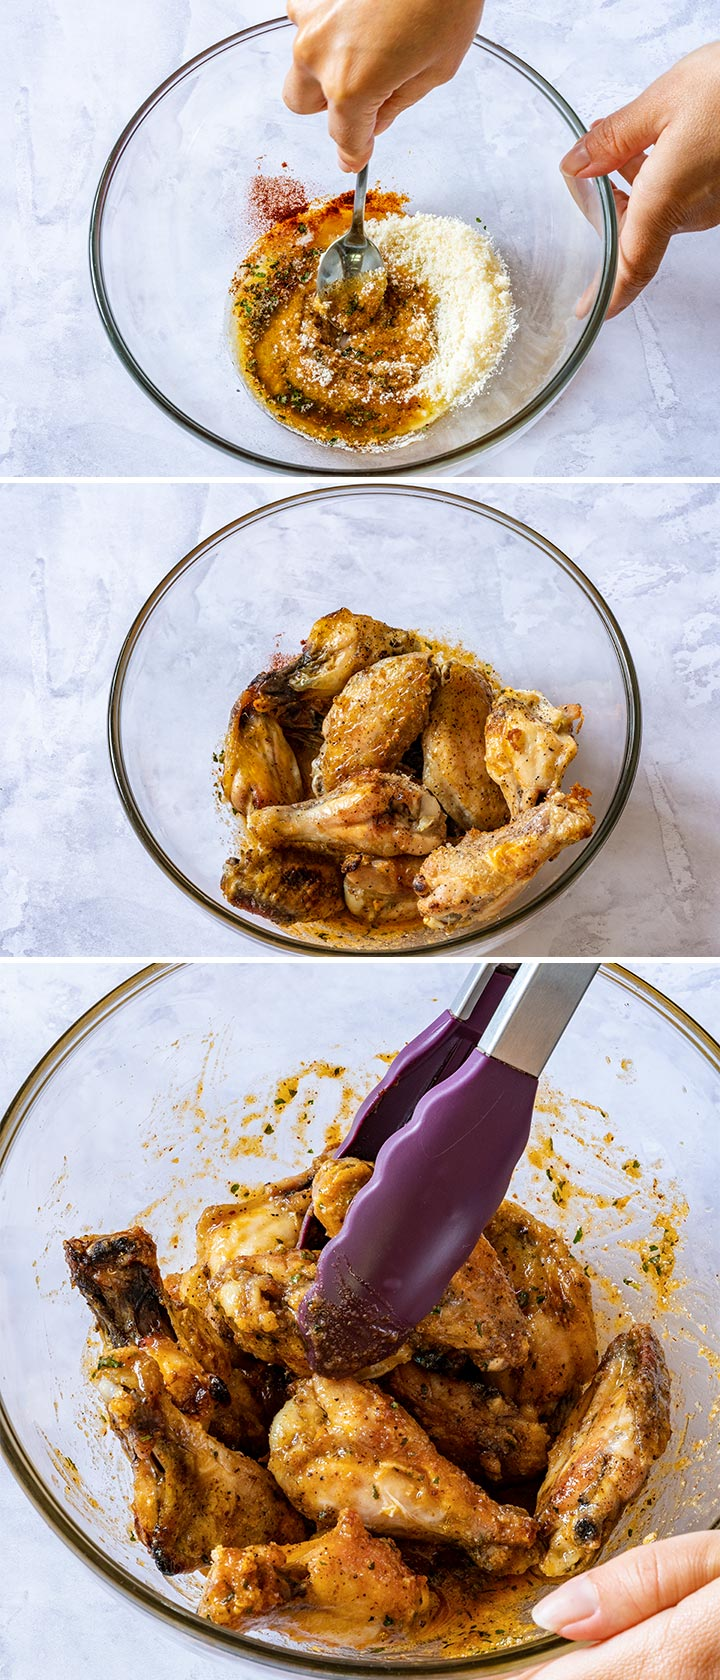 Steps how to make chicken wings with garlic and parmesan cheese